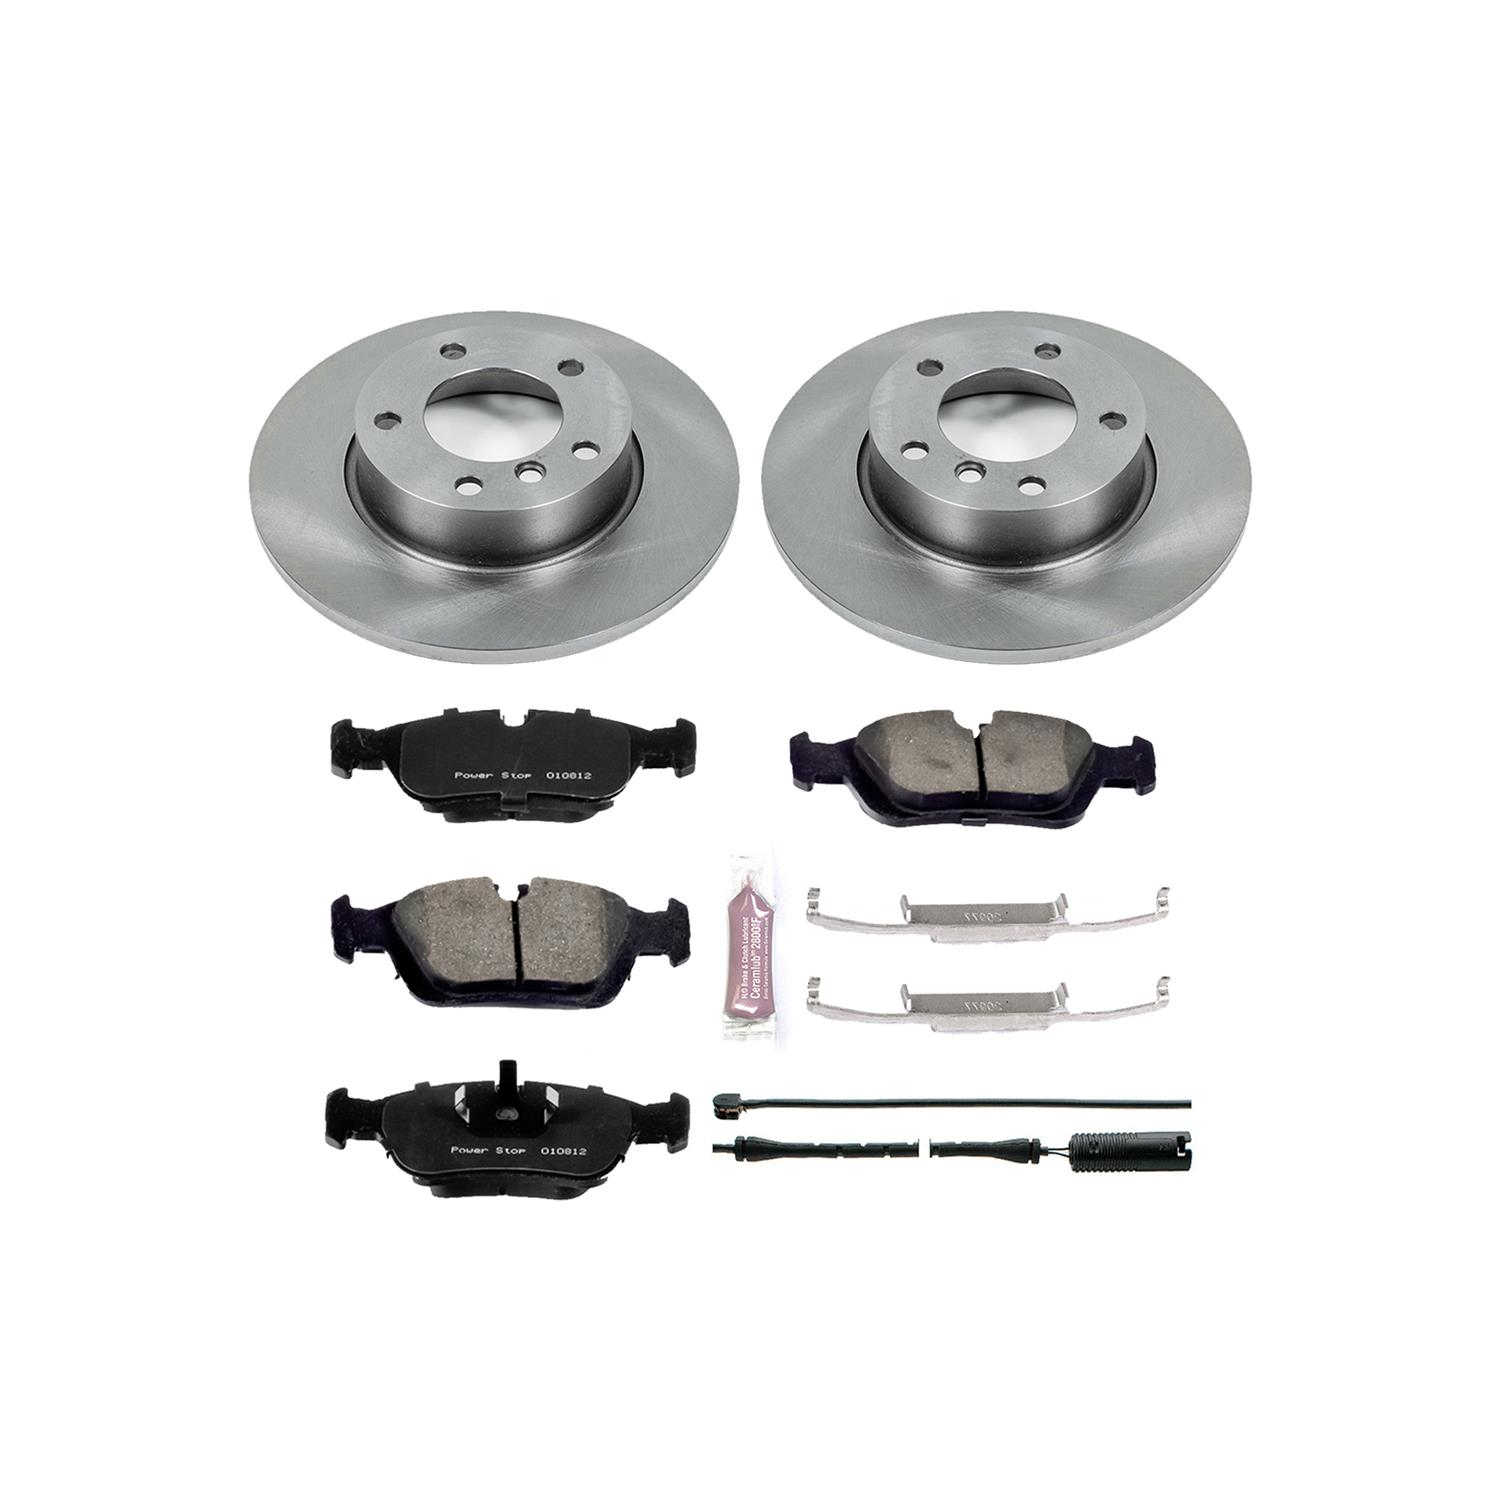 KOE108 Autospecialty 1-Click OE Replacement Brake Kit Power Stop